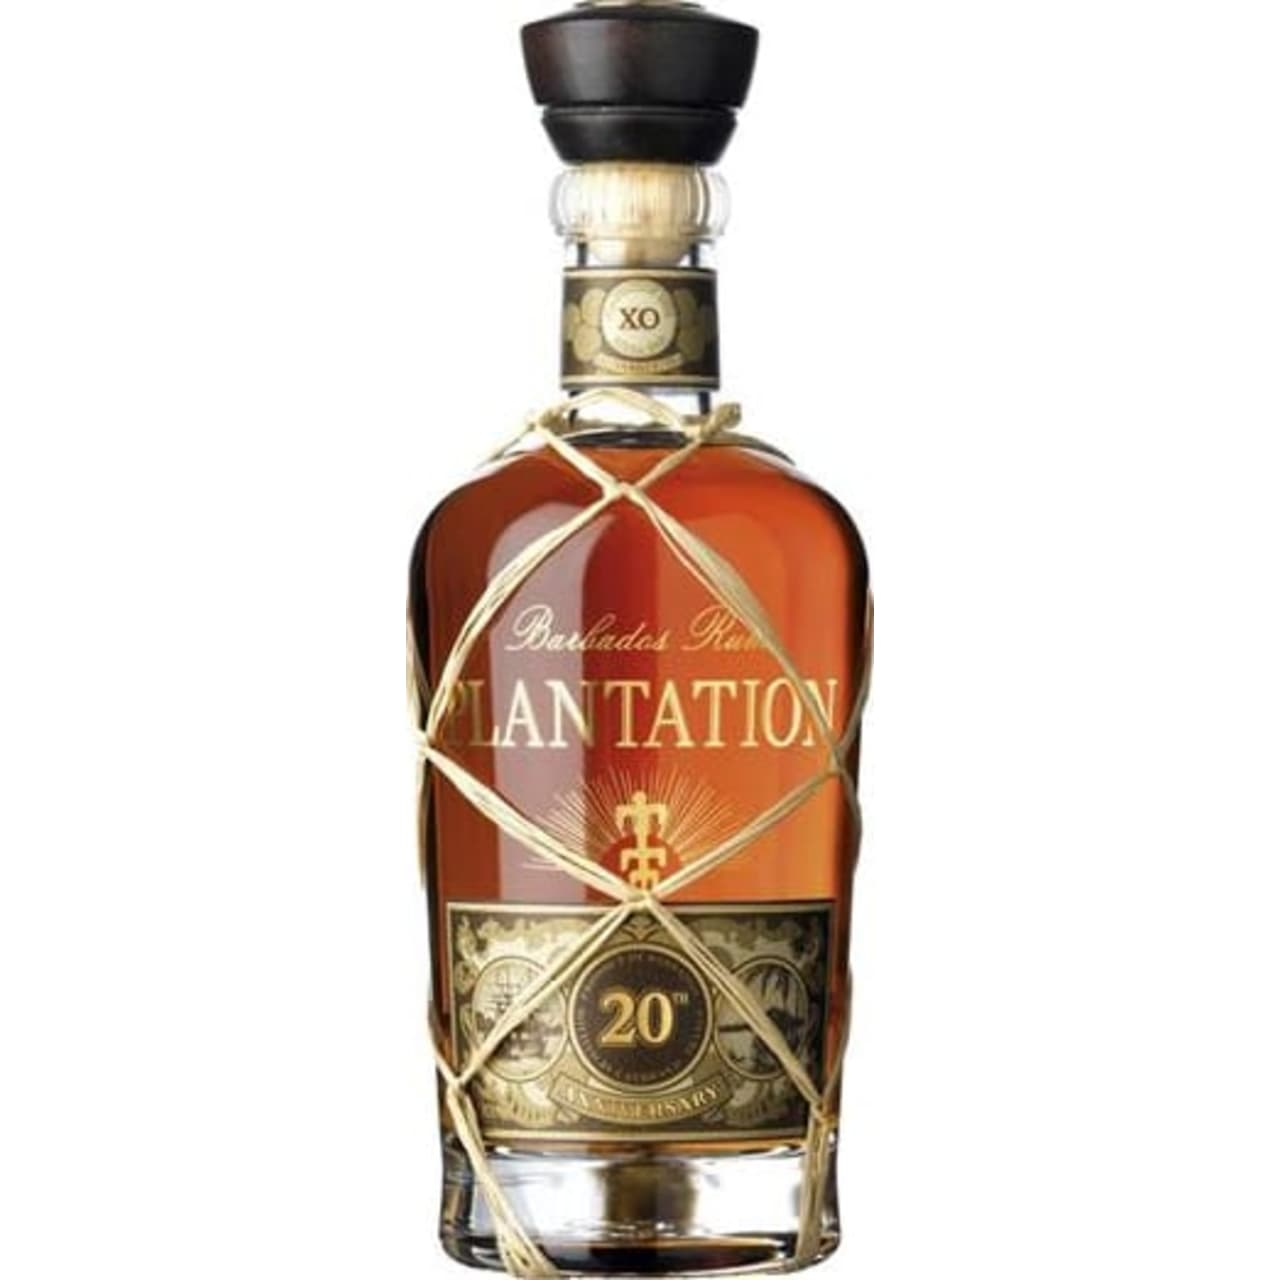 Product Image - Plantation XO Rum 20th Anniversary Decanter